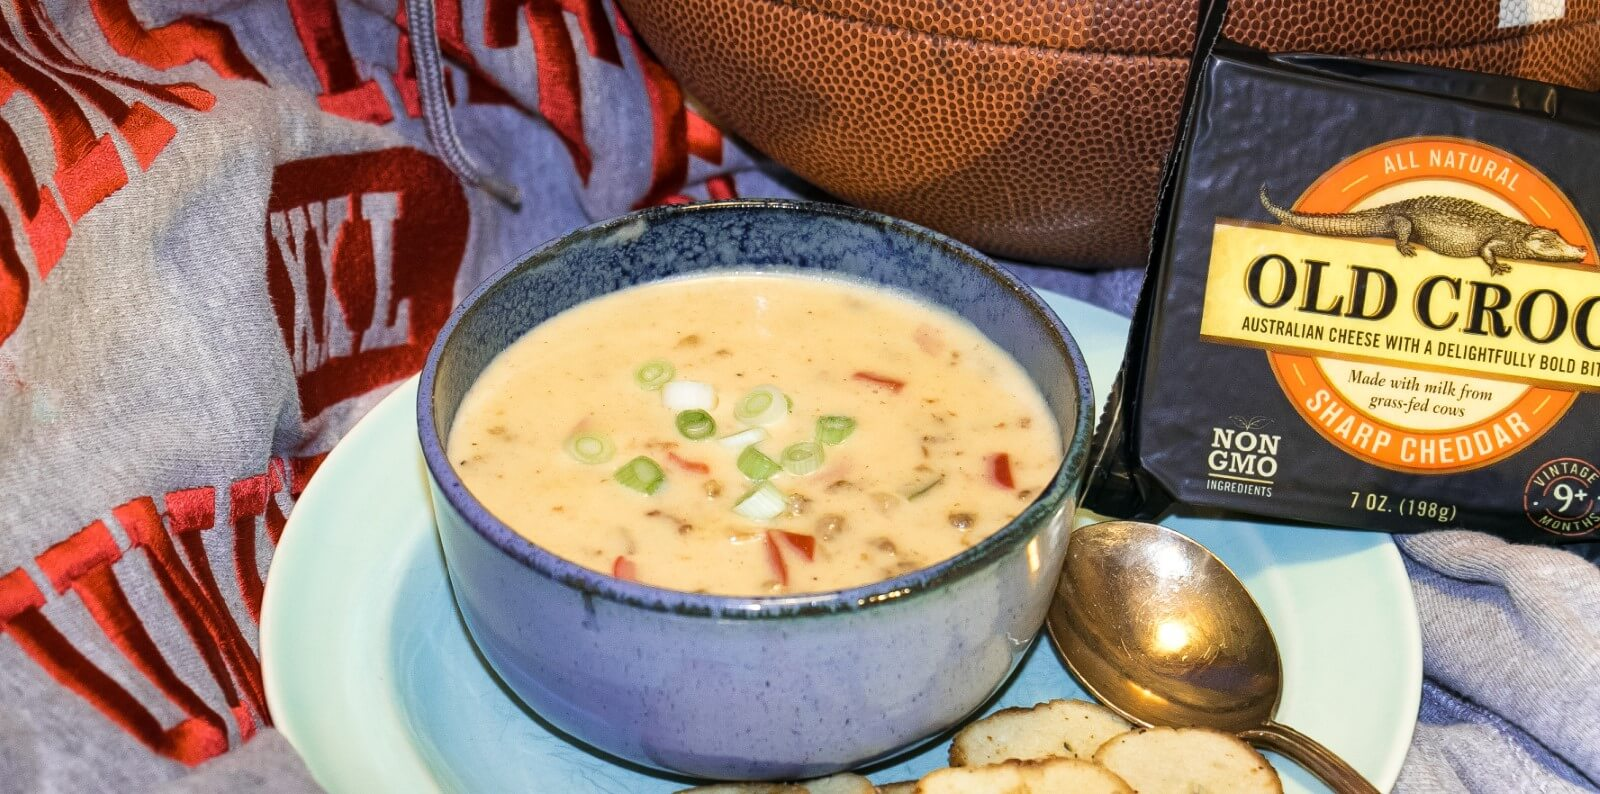 Cheddar Cheese and Sausage Soup